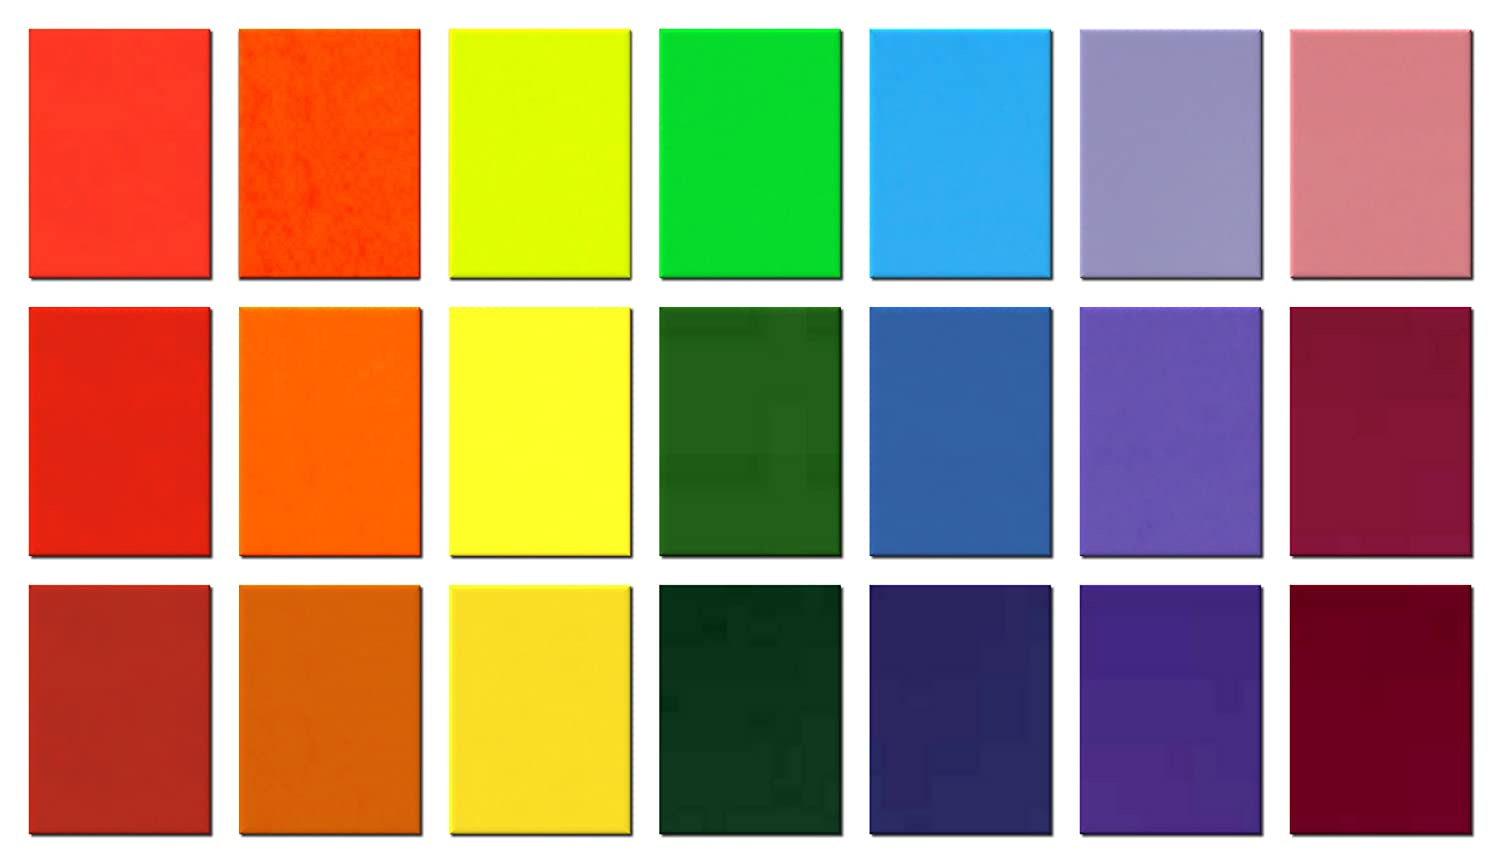 Crafts and Decorating Wax Set Rainbow 110 x 80 x 0,5 mm Pack of 20/Pieces 110/x 80/mm Wax Candles